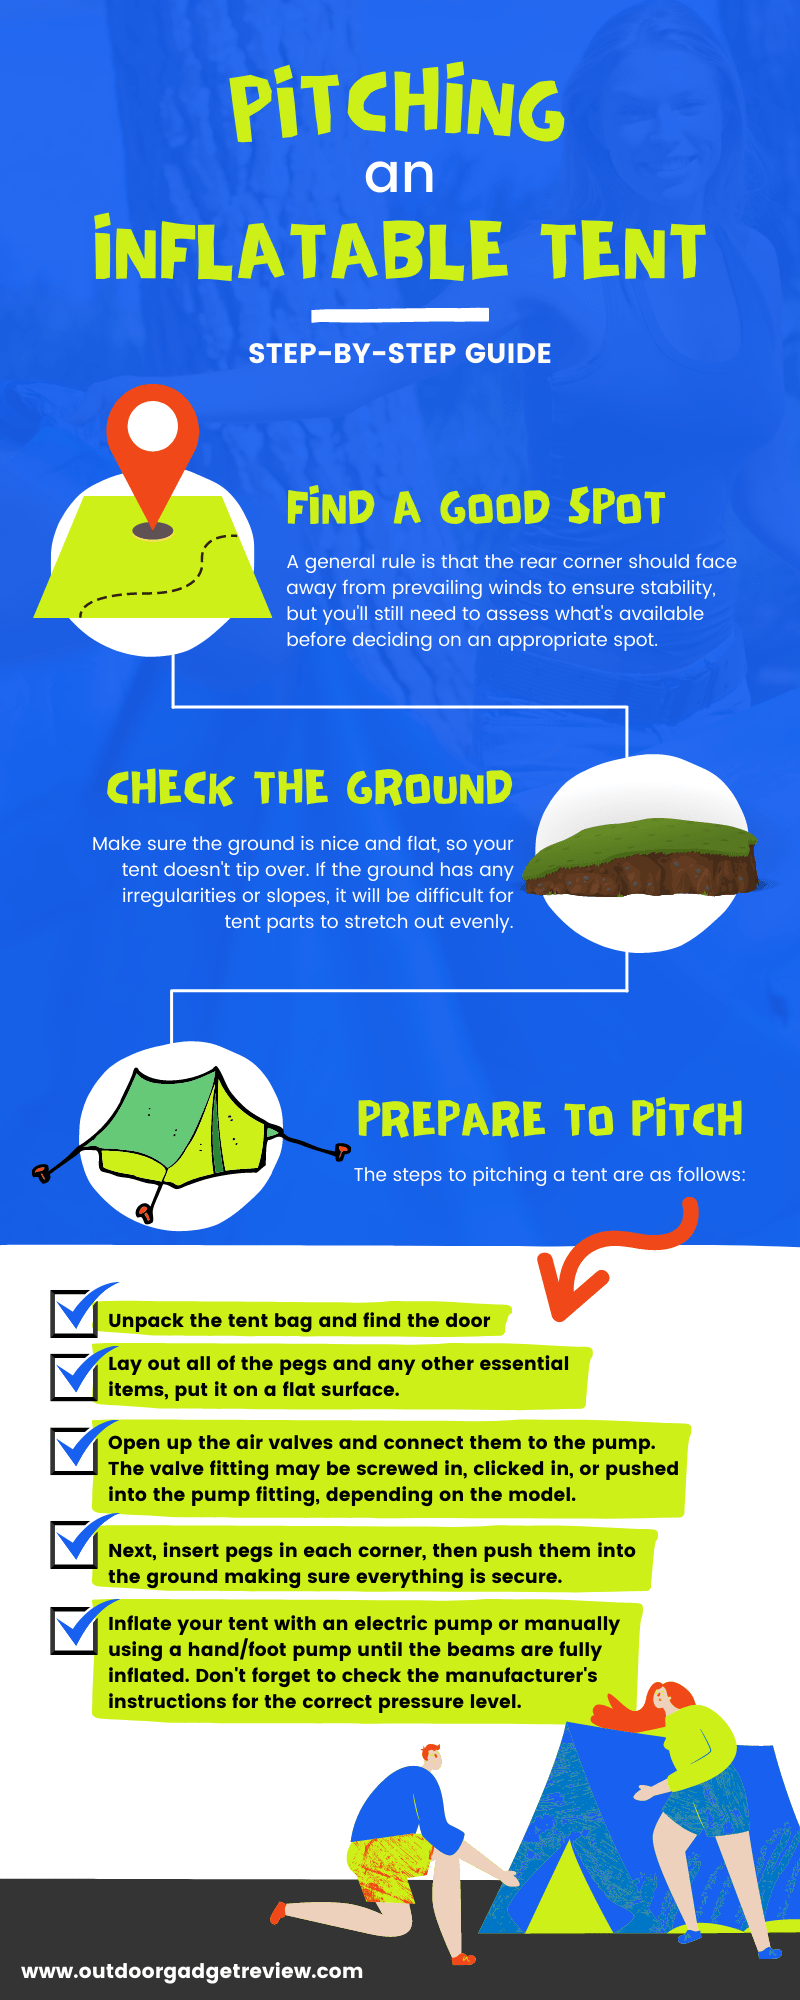 Pitching an Inflatable Tent Step-by-Step